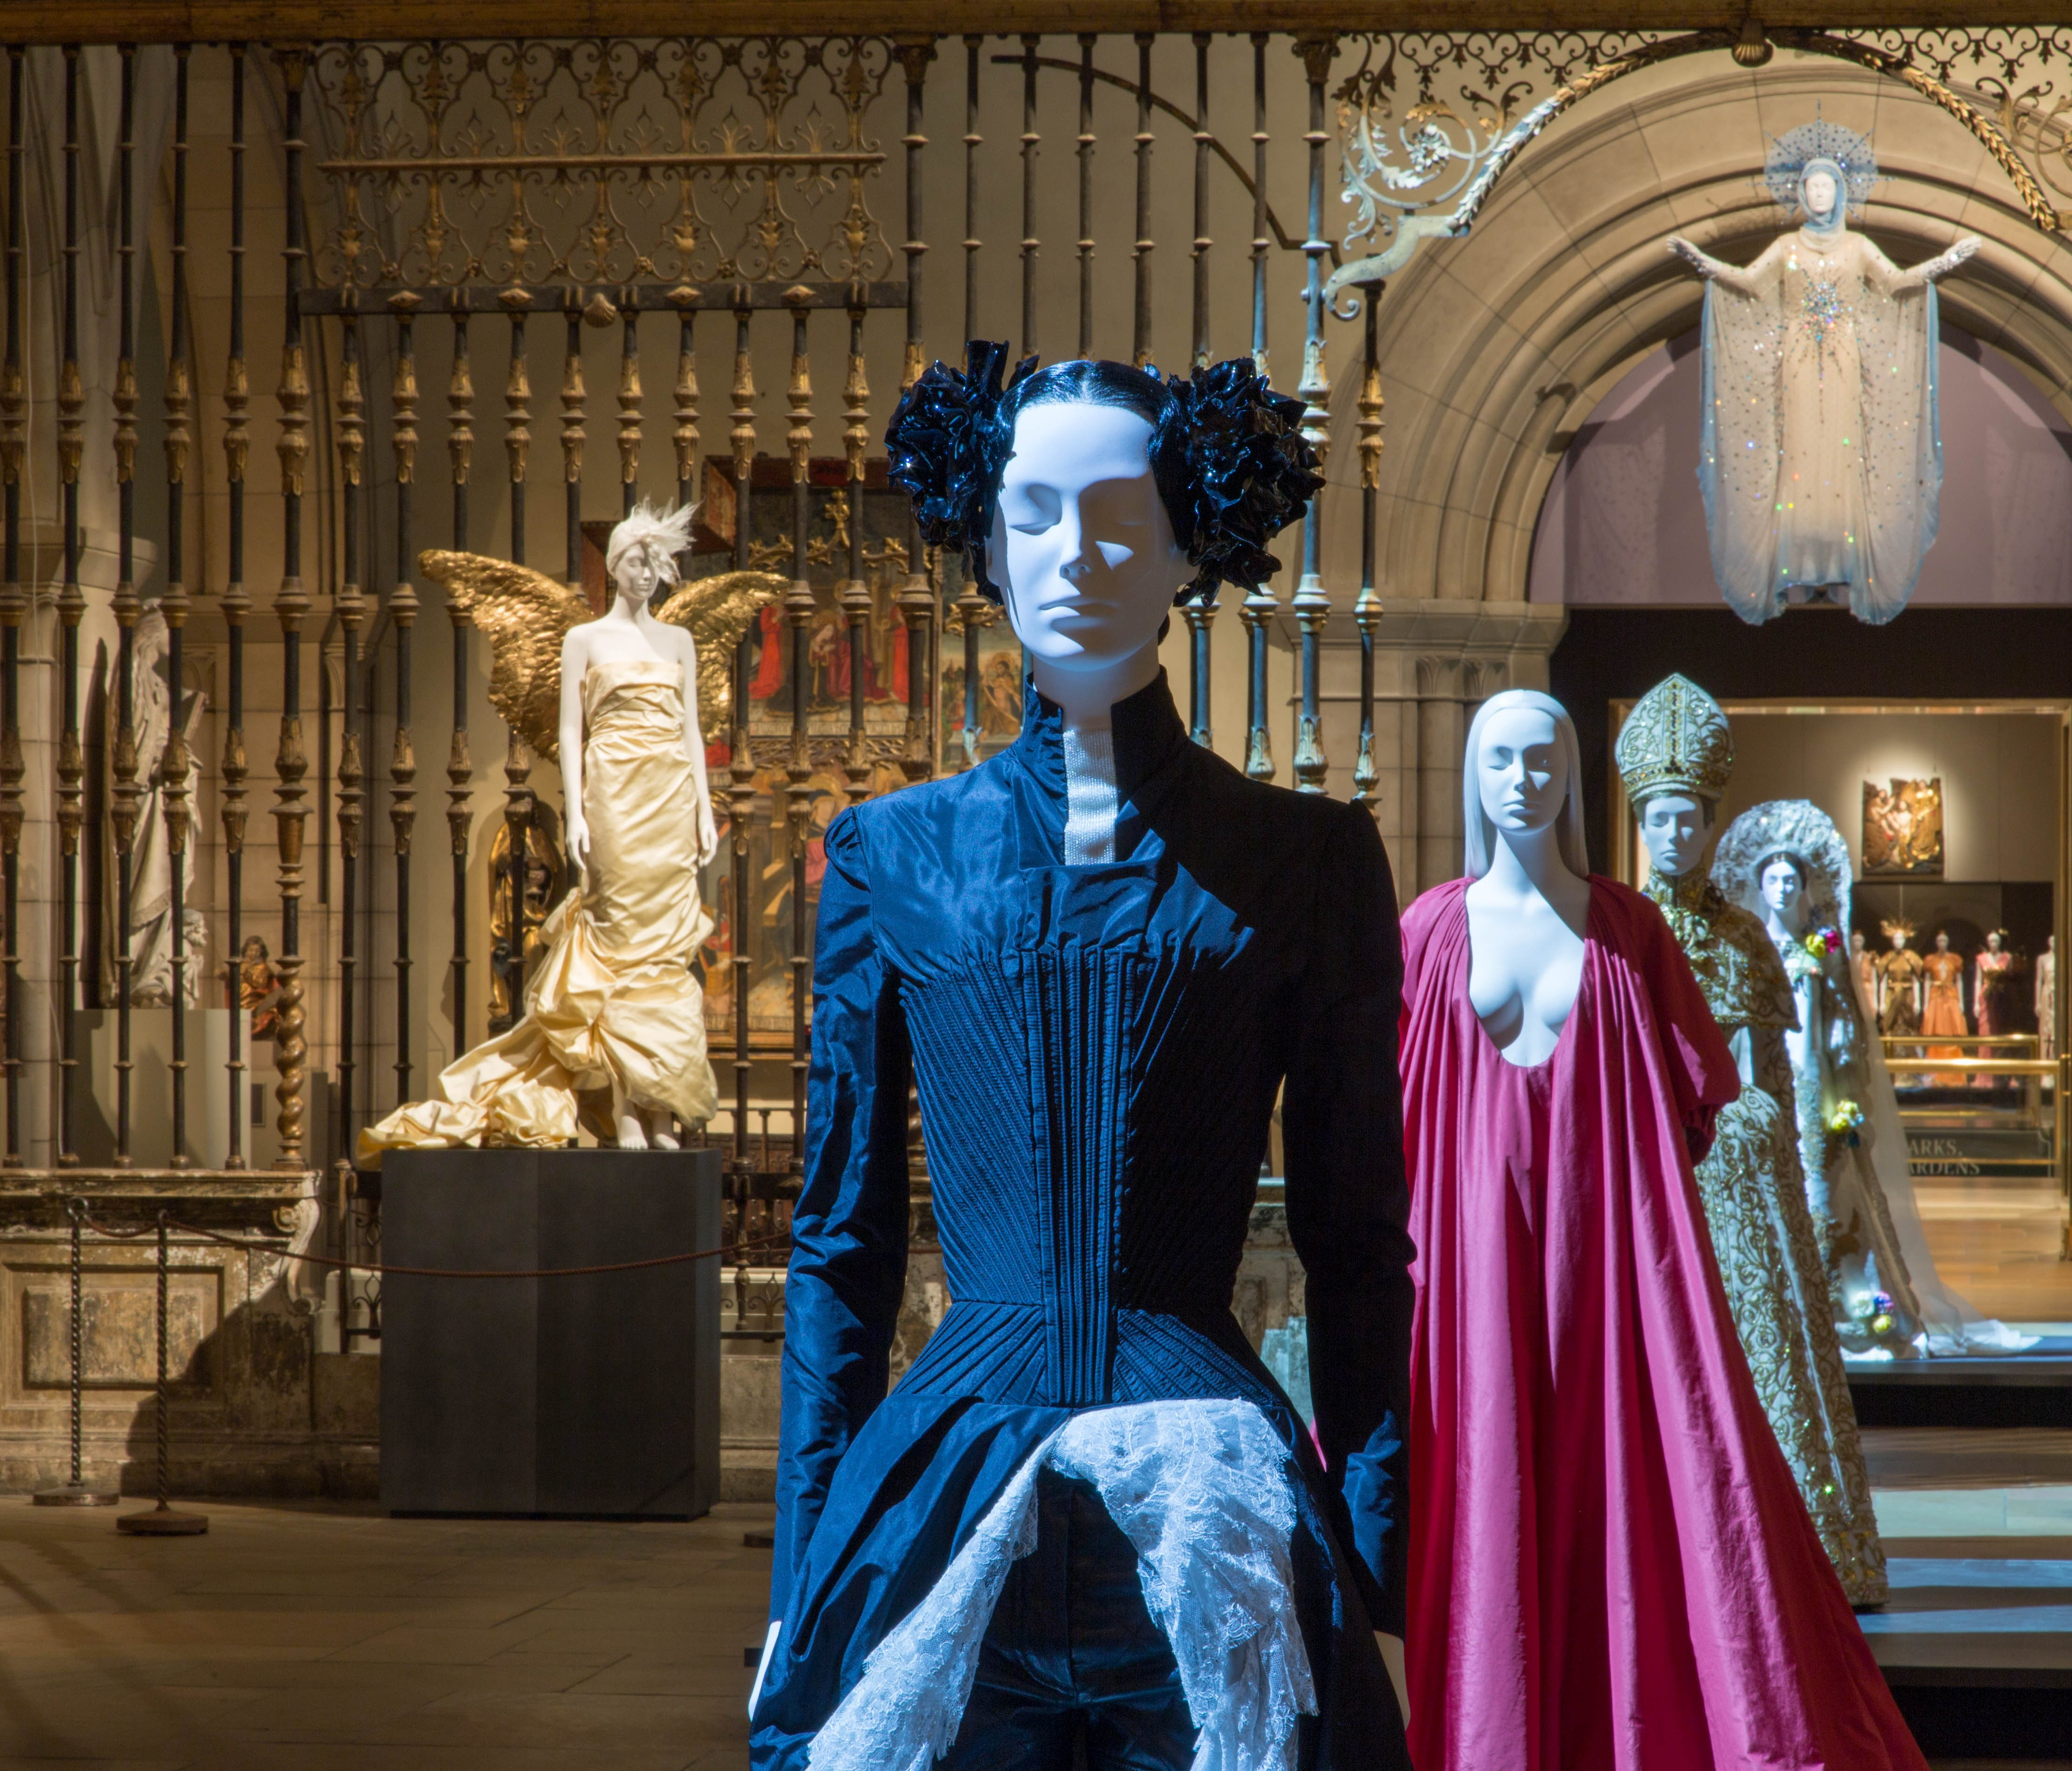 A view of the Medieval Sculpture Hall, including looks by Alexander McQueen, Valentino and Dior.